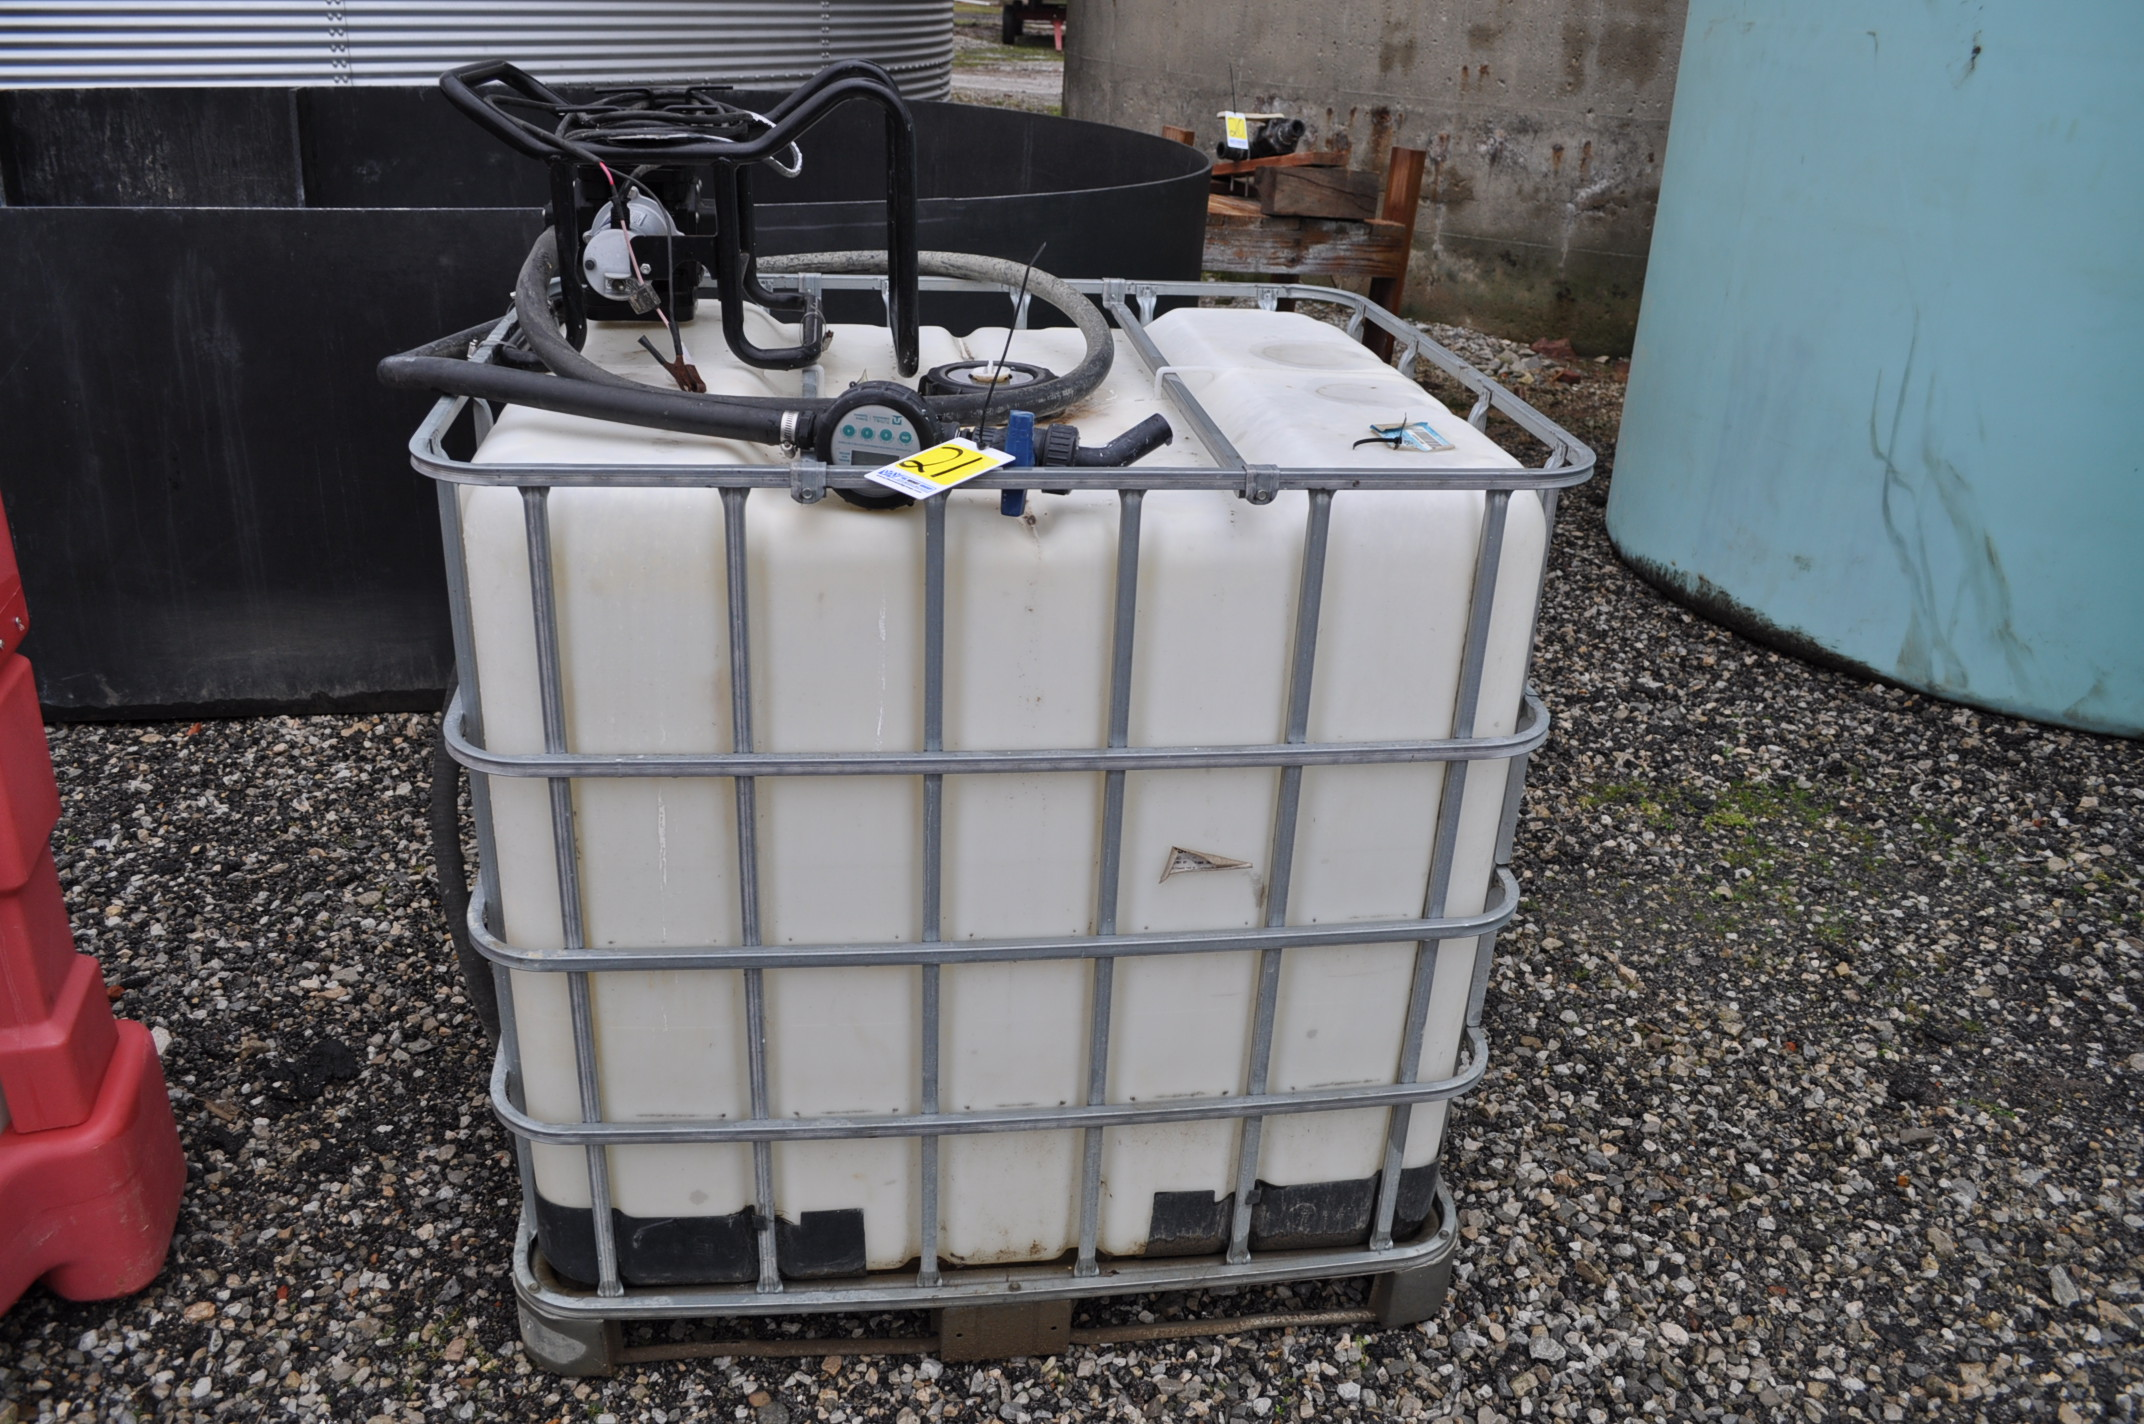 265 gal chemical cage tank with 12volt pump, meter and hose